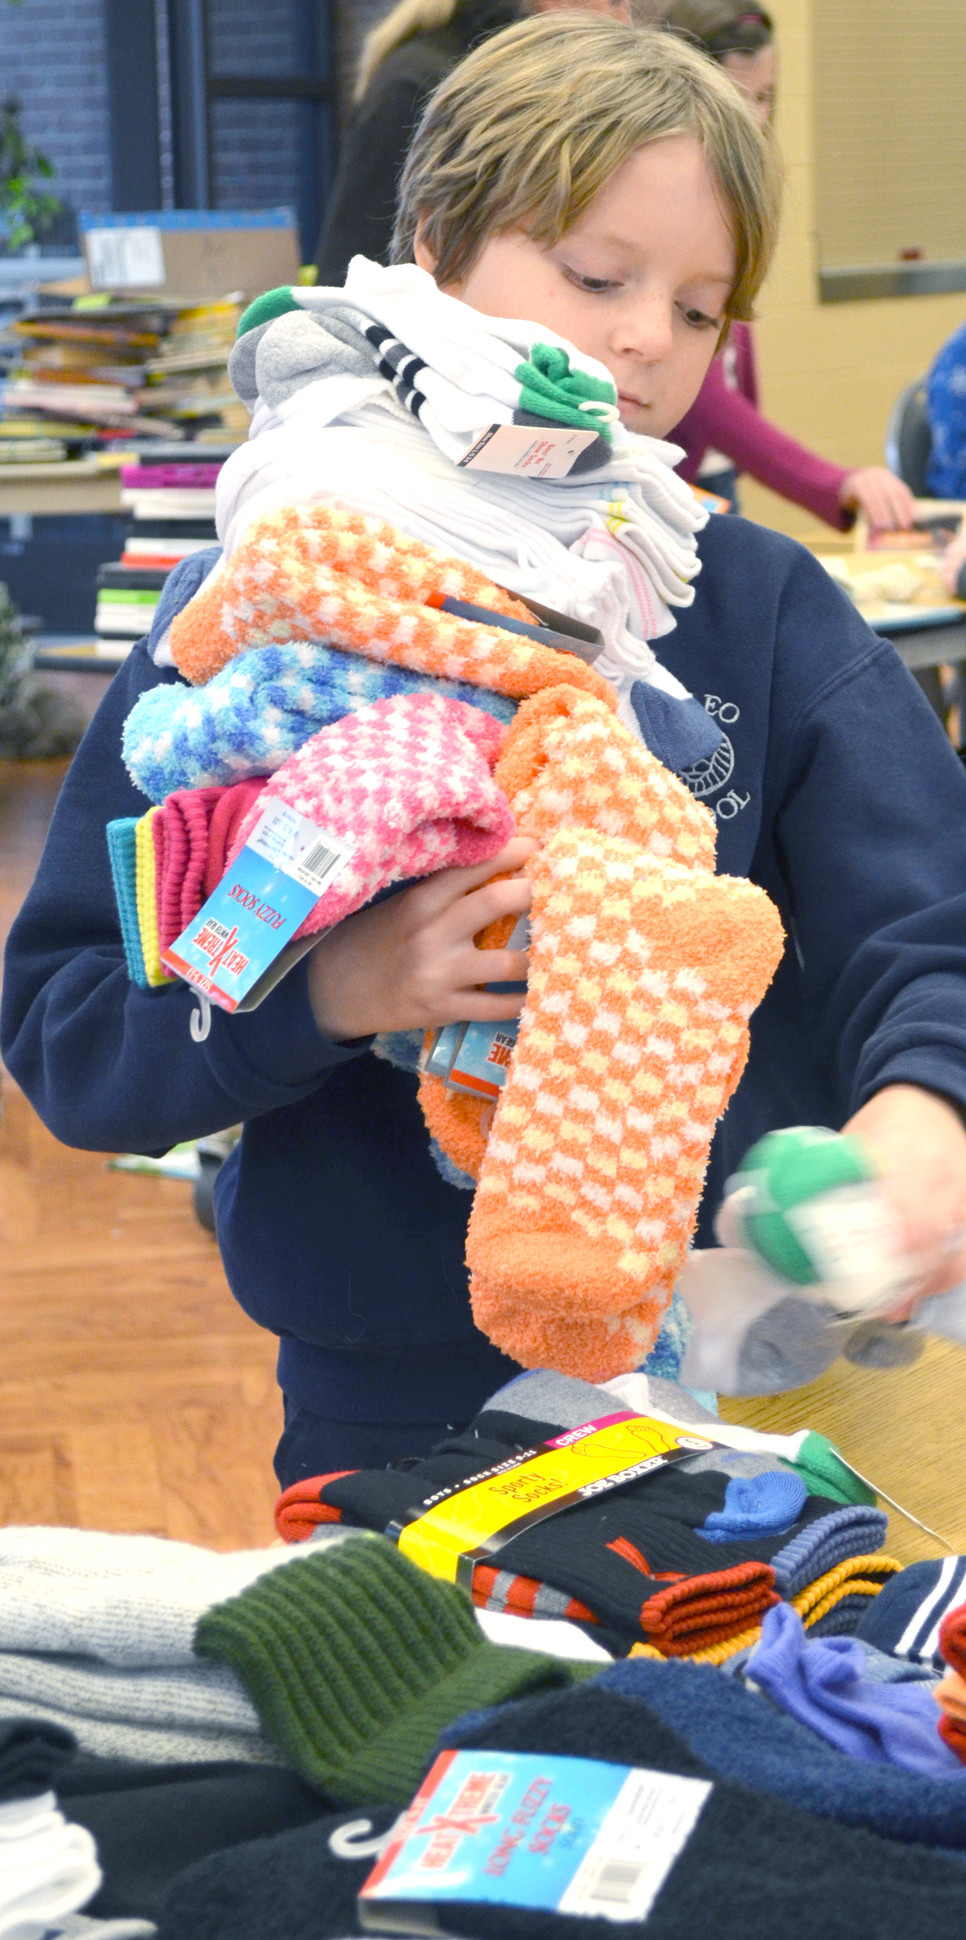 SARAH GREGORY, a fifth-grader at St. Leo School, carried an armload of socks while helping to sort donated items for this year's Christmas Store last week. (Photo by Bob Vlach)